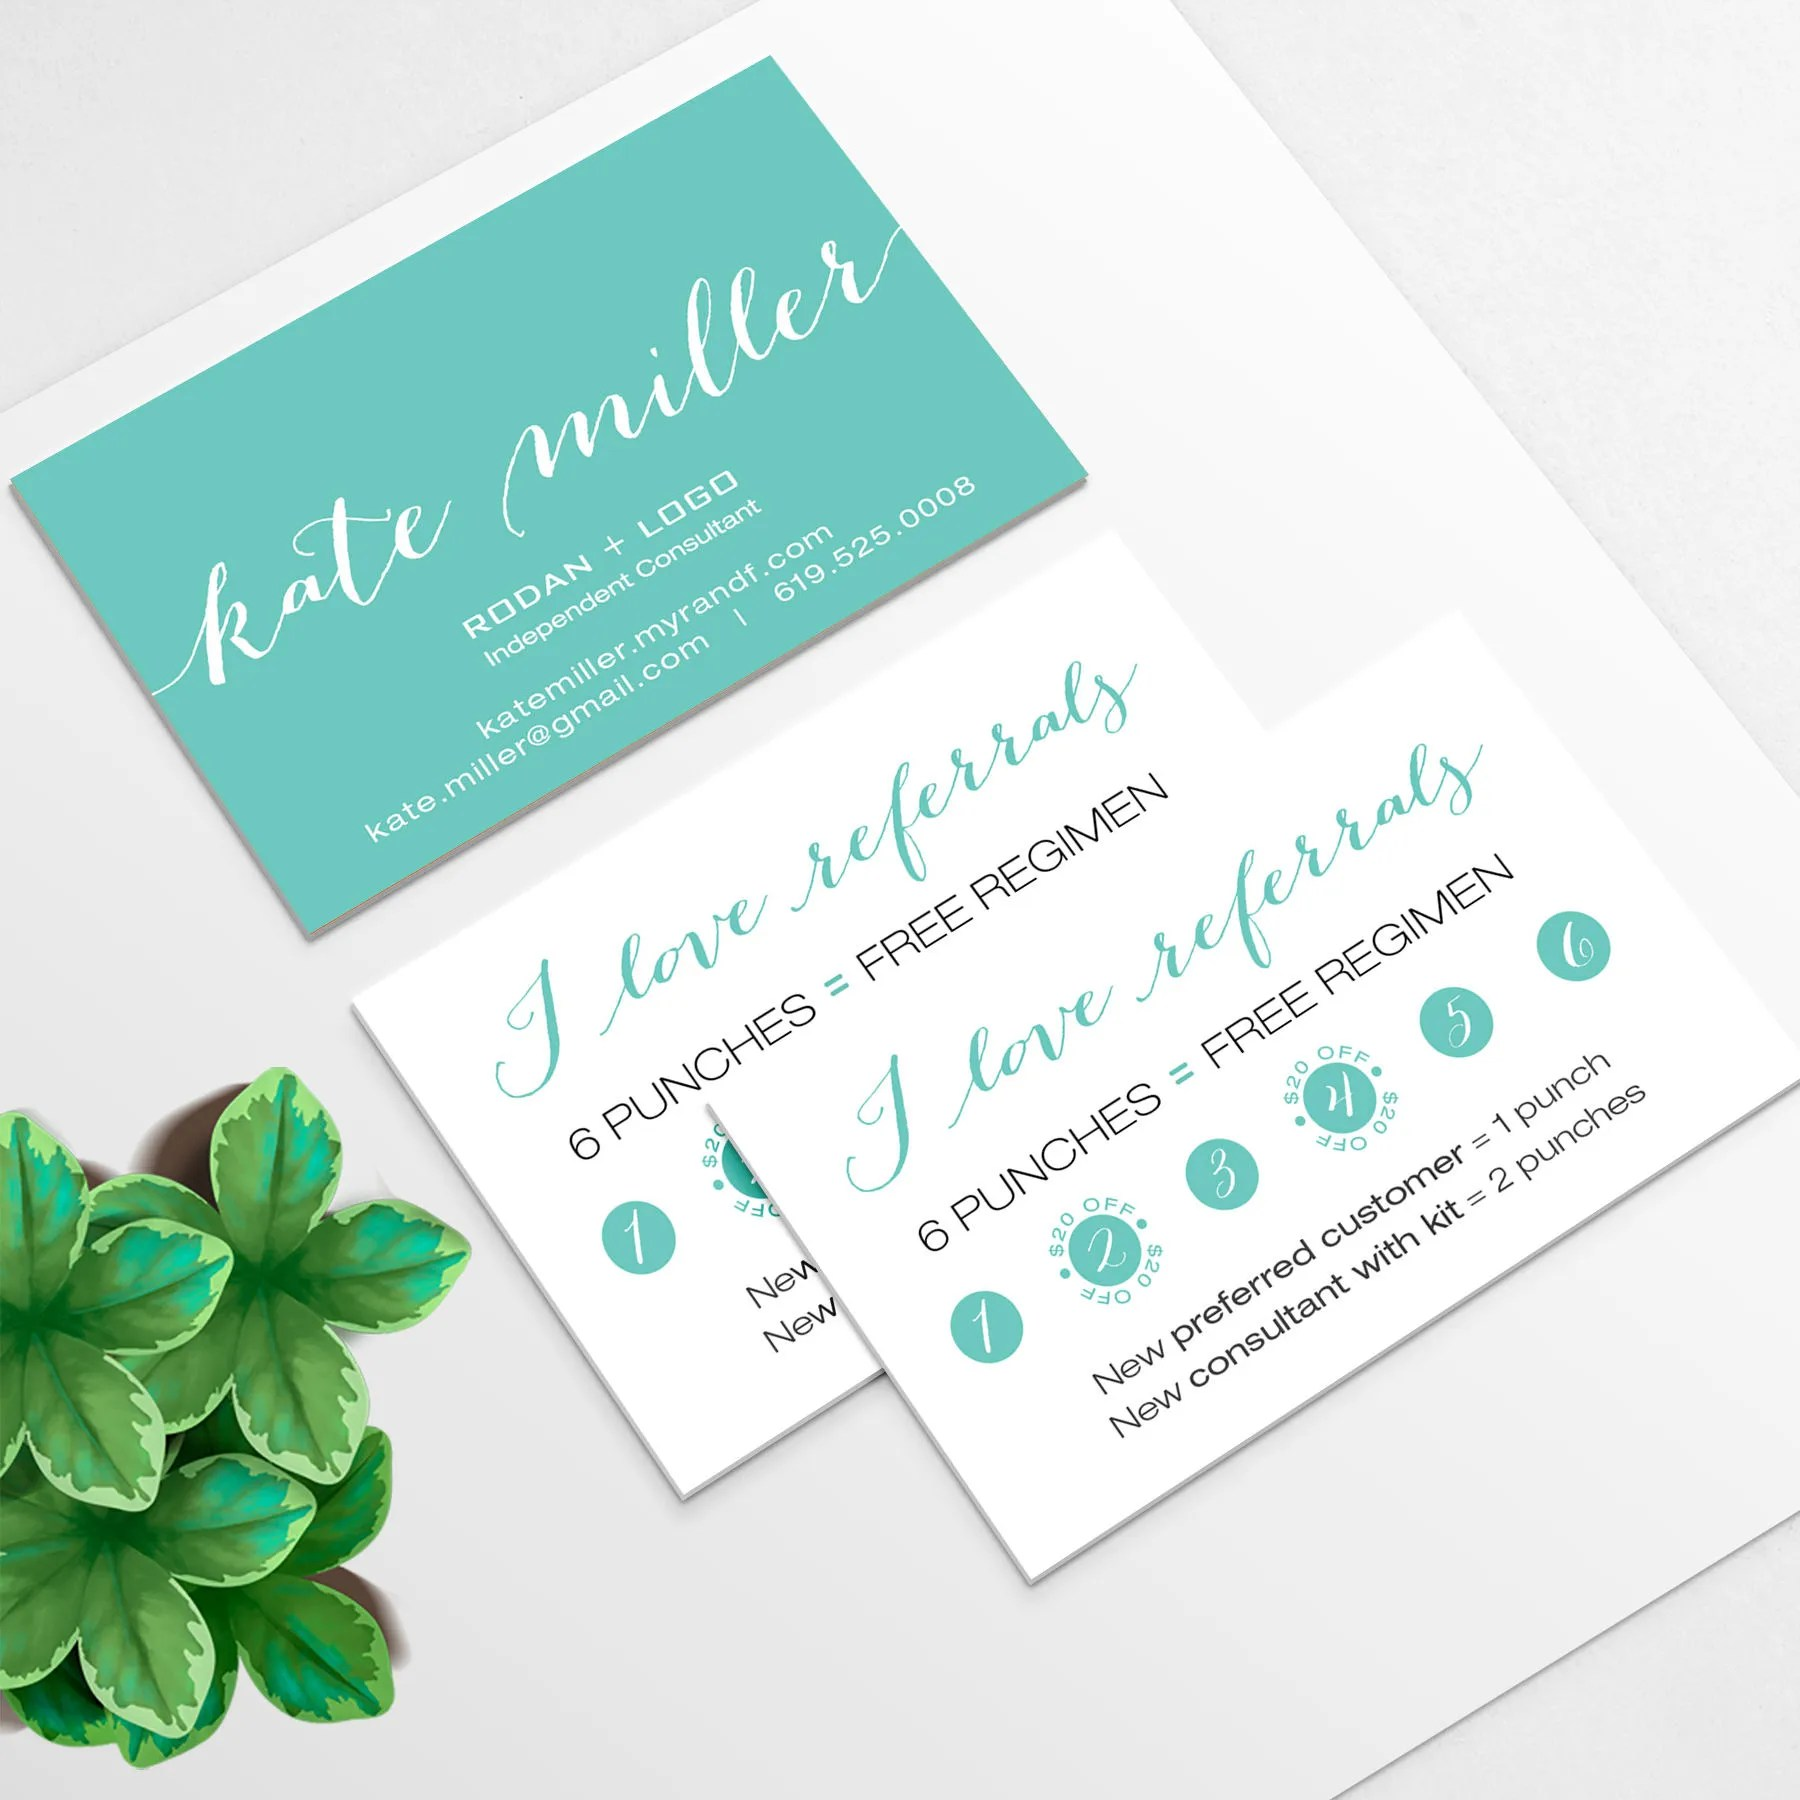 Rodan and Fields Business Card and Referral Punch Card for Etsy